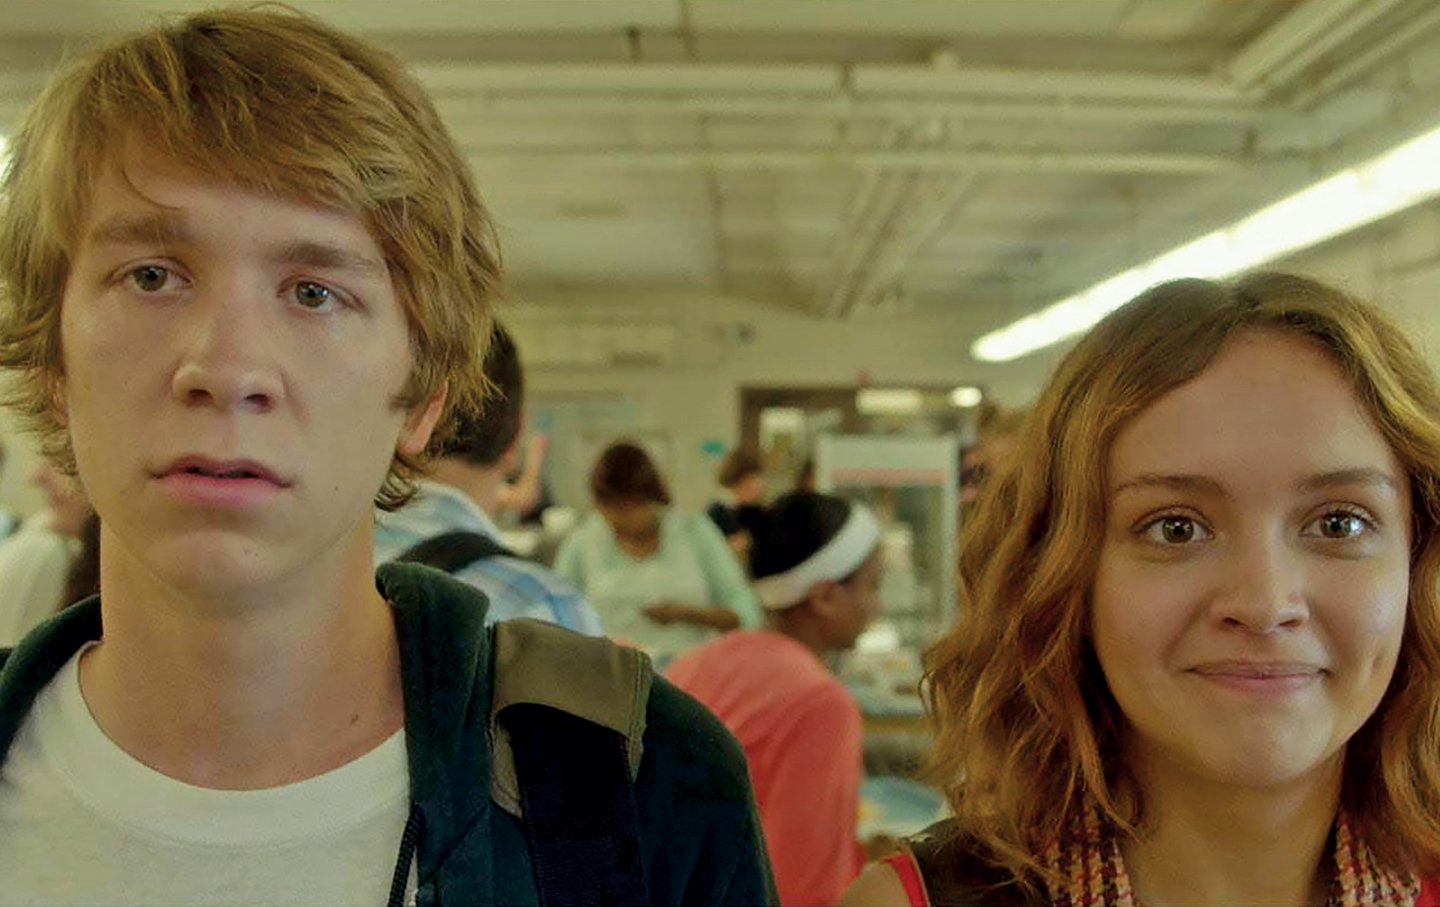 Still image from Me and Earl and the Dying Girl